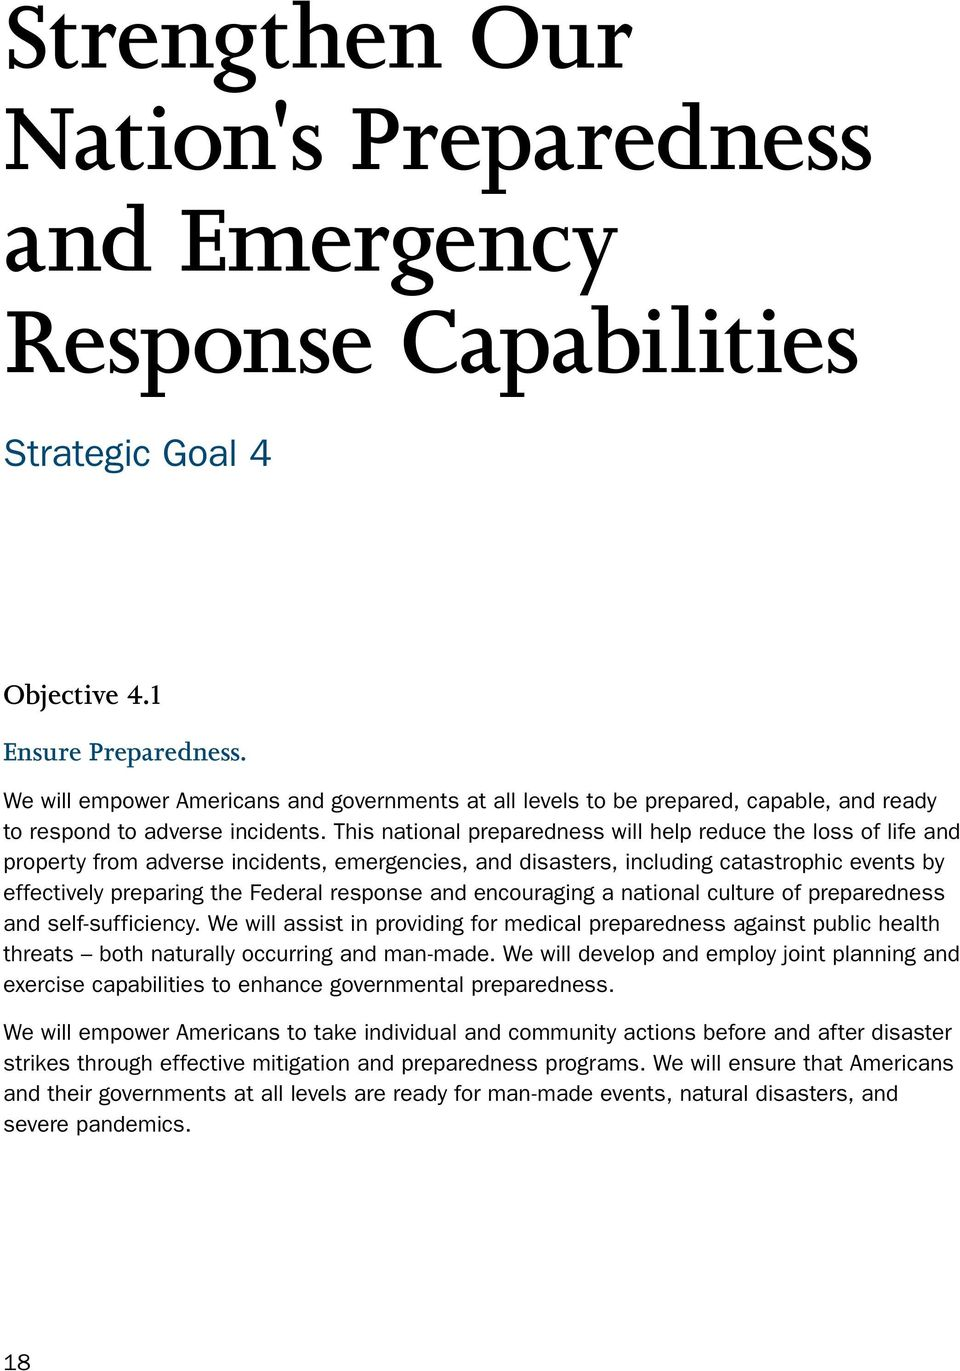 This national preparedness will help reduce the loss of life and property from adverse incidents, emergencies, and disasters, including catastrophic events by effectively preparing the Federal